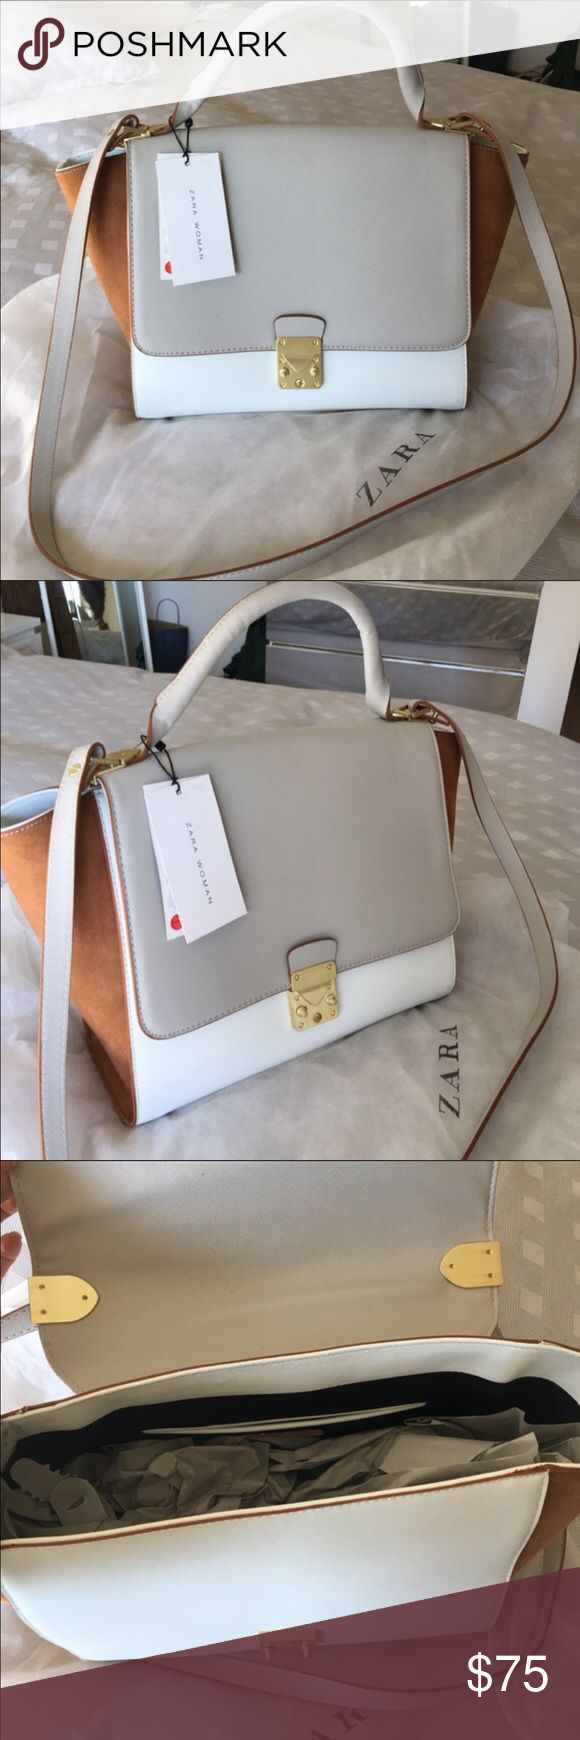 NWT gorgeous Zara purse NWT beautiful Zara purse 2 colors with gold accent. Can be worn as shoulder bag, cross body or hands. Zara Bags Crossbody Bags